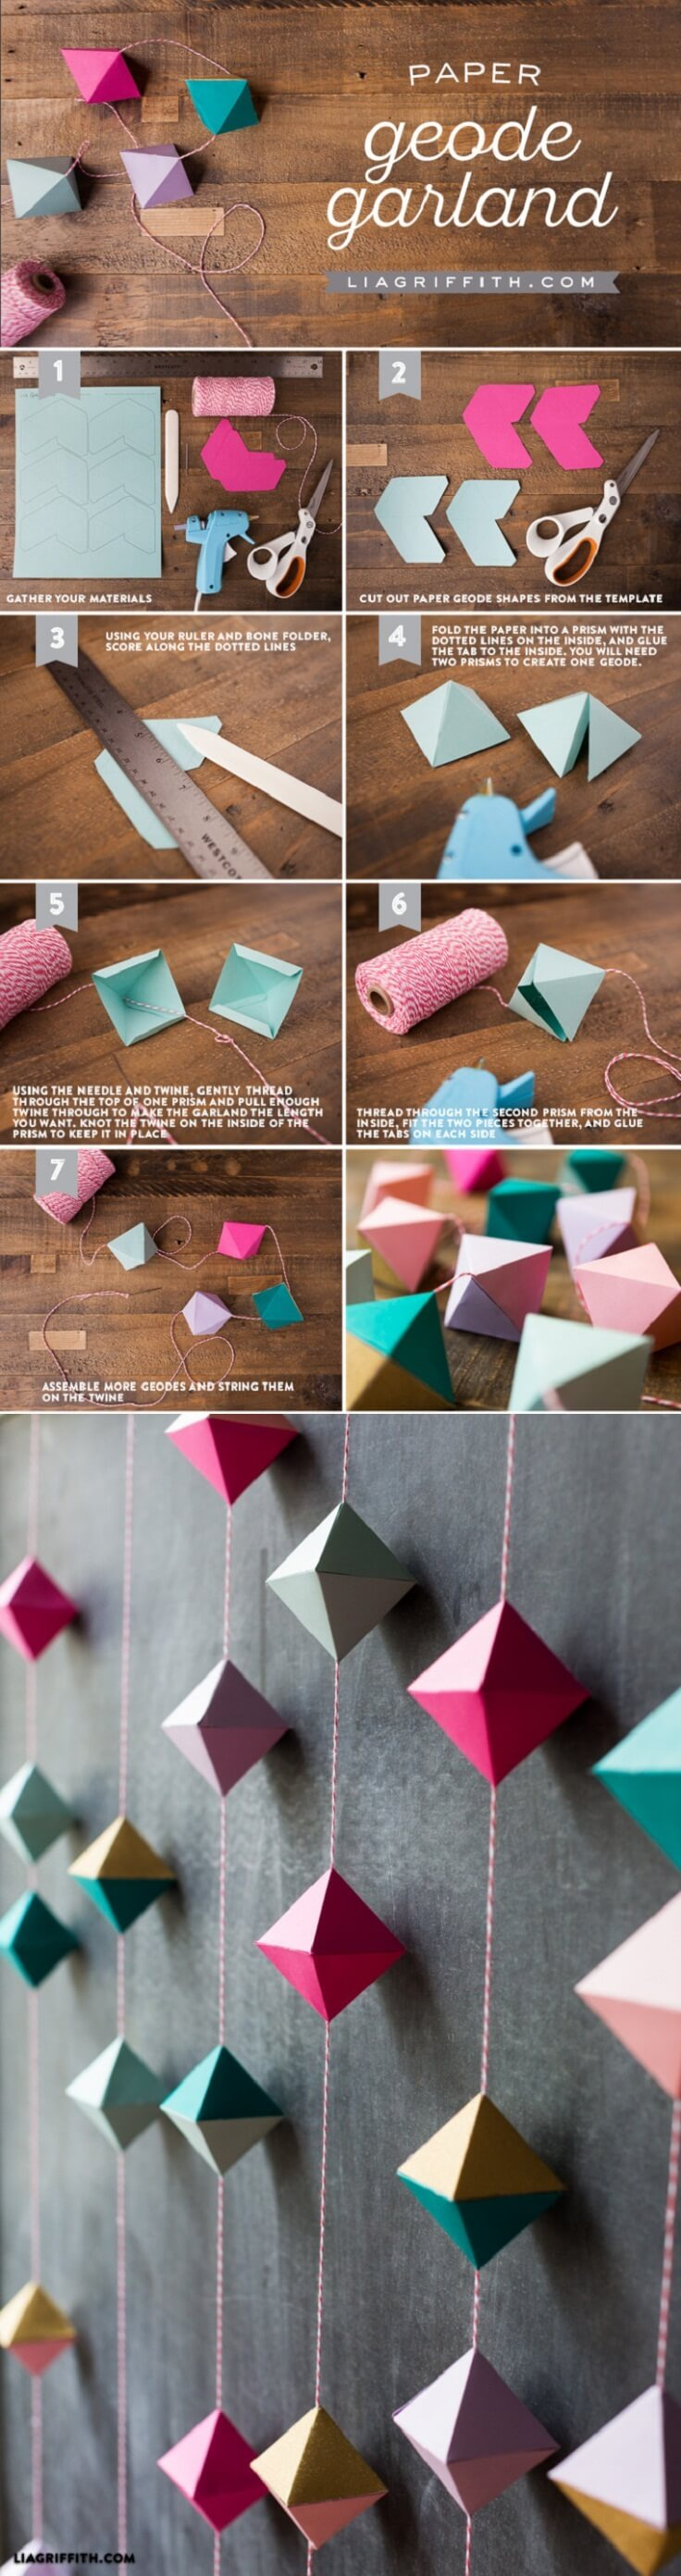 16 Best Paper Decor Crafts (Ideas and Designs) for 16